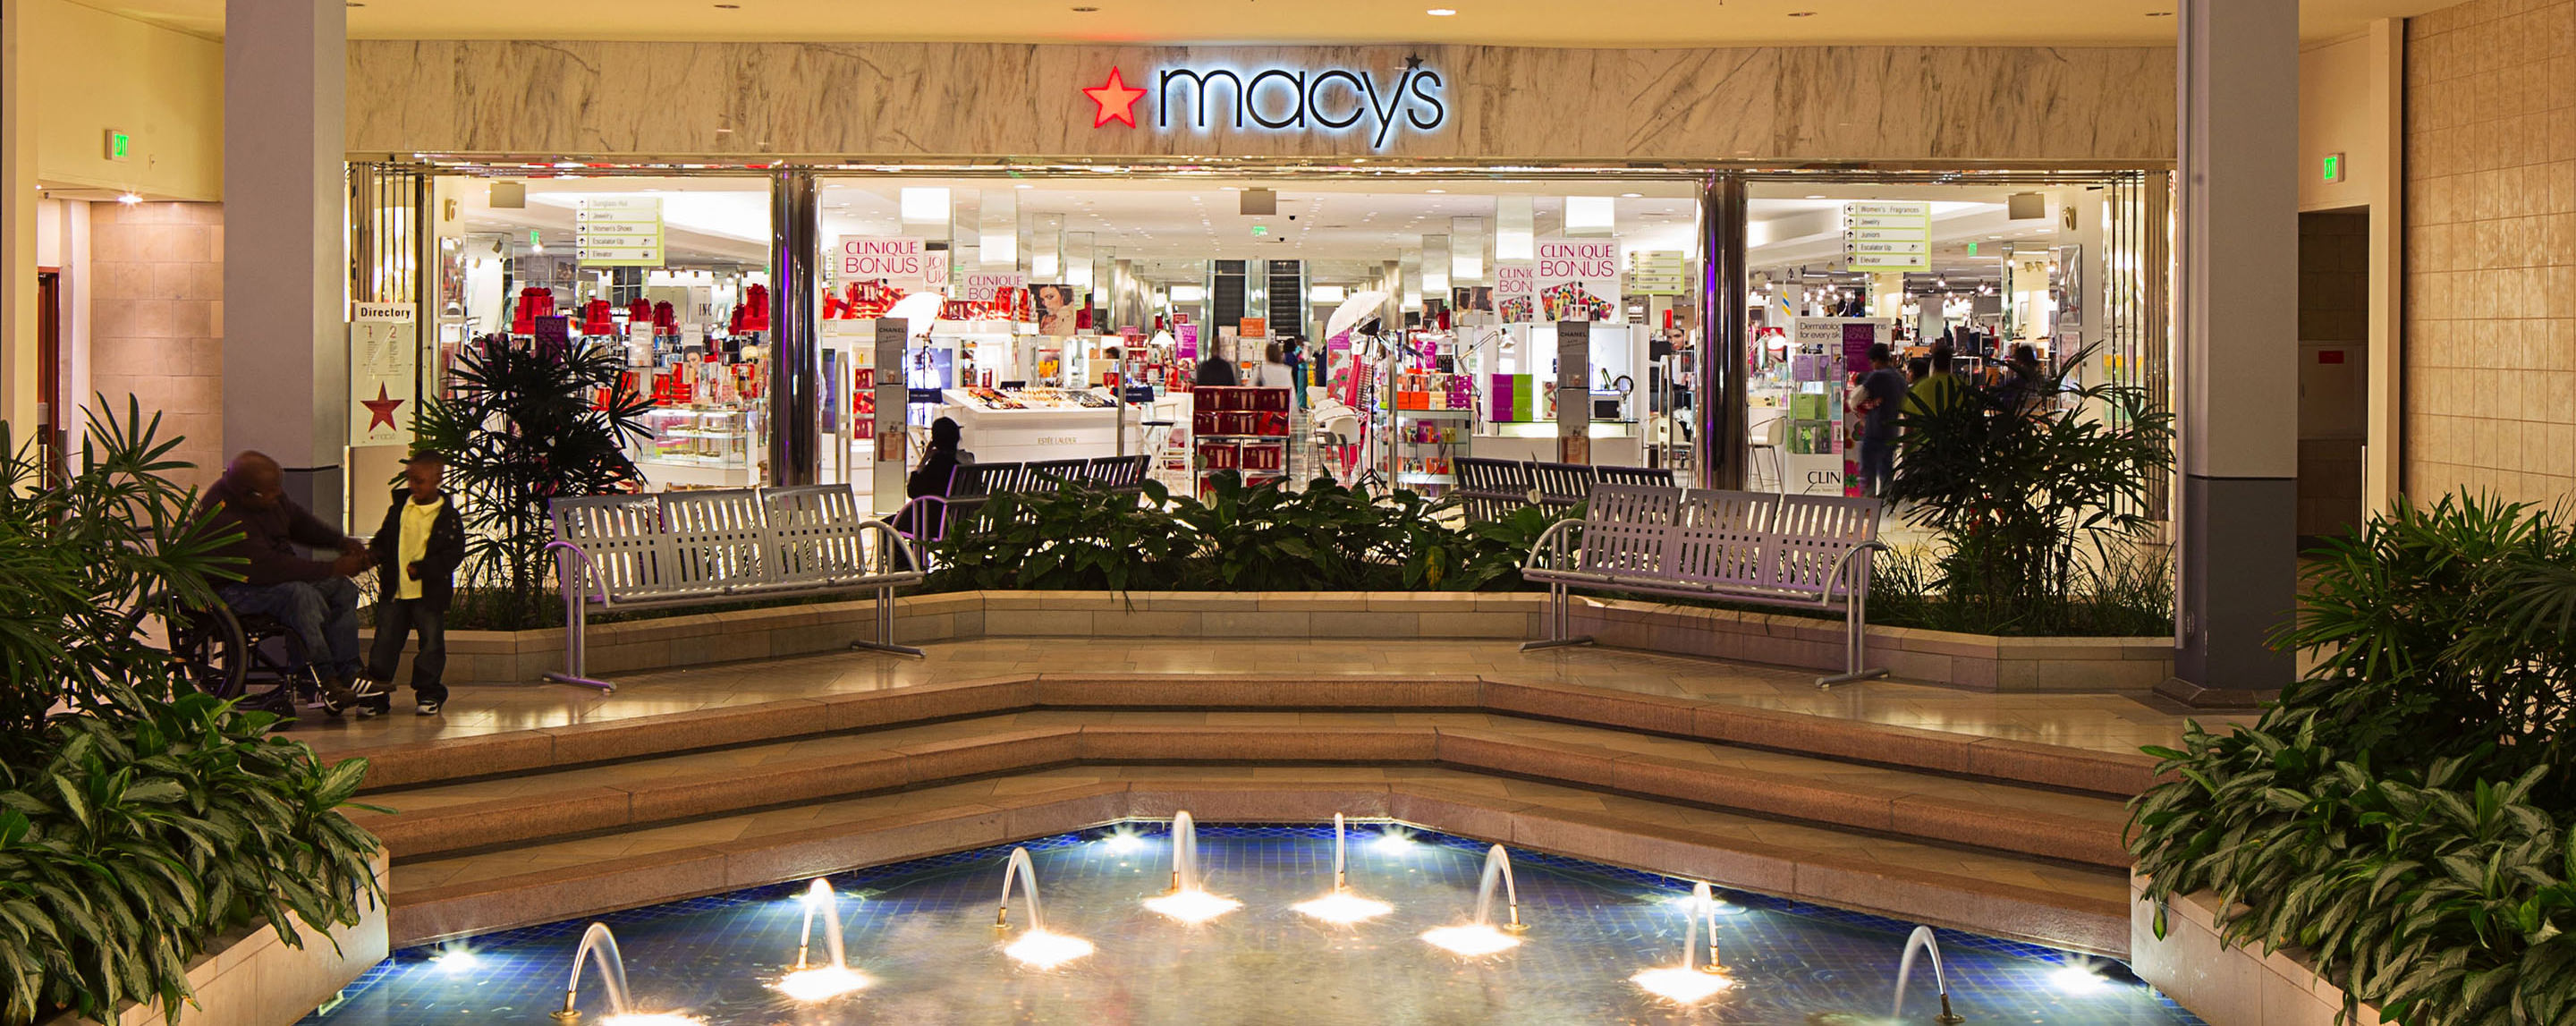 Outside of the White Marsh Macy's shoppers take a break near a decorative fountain.